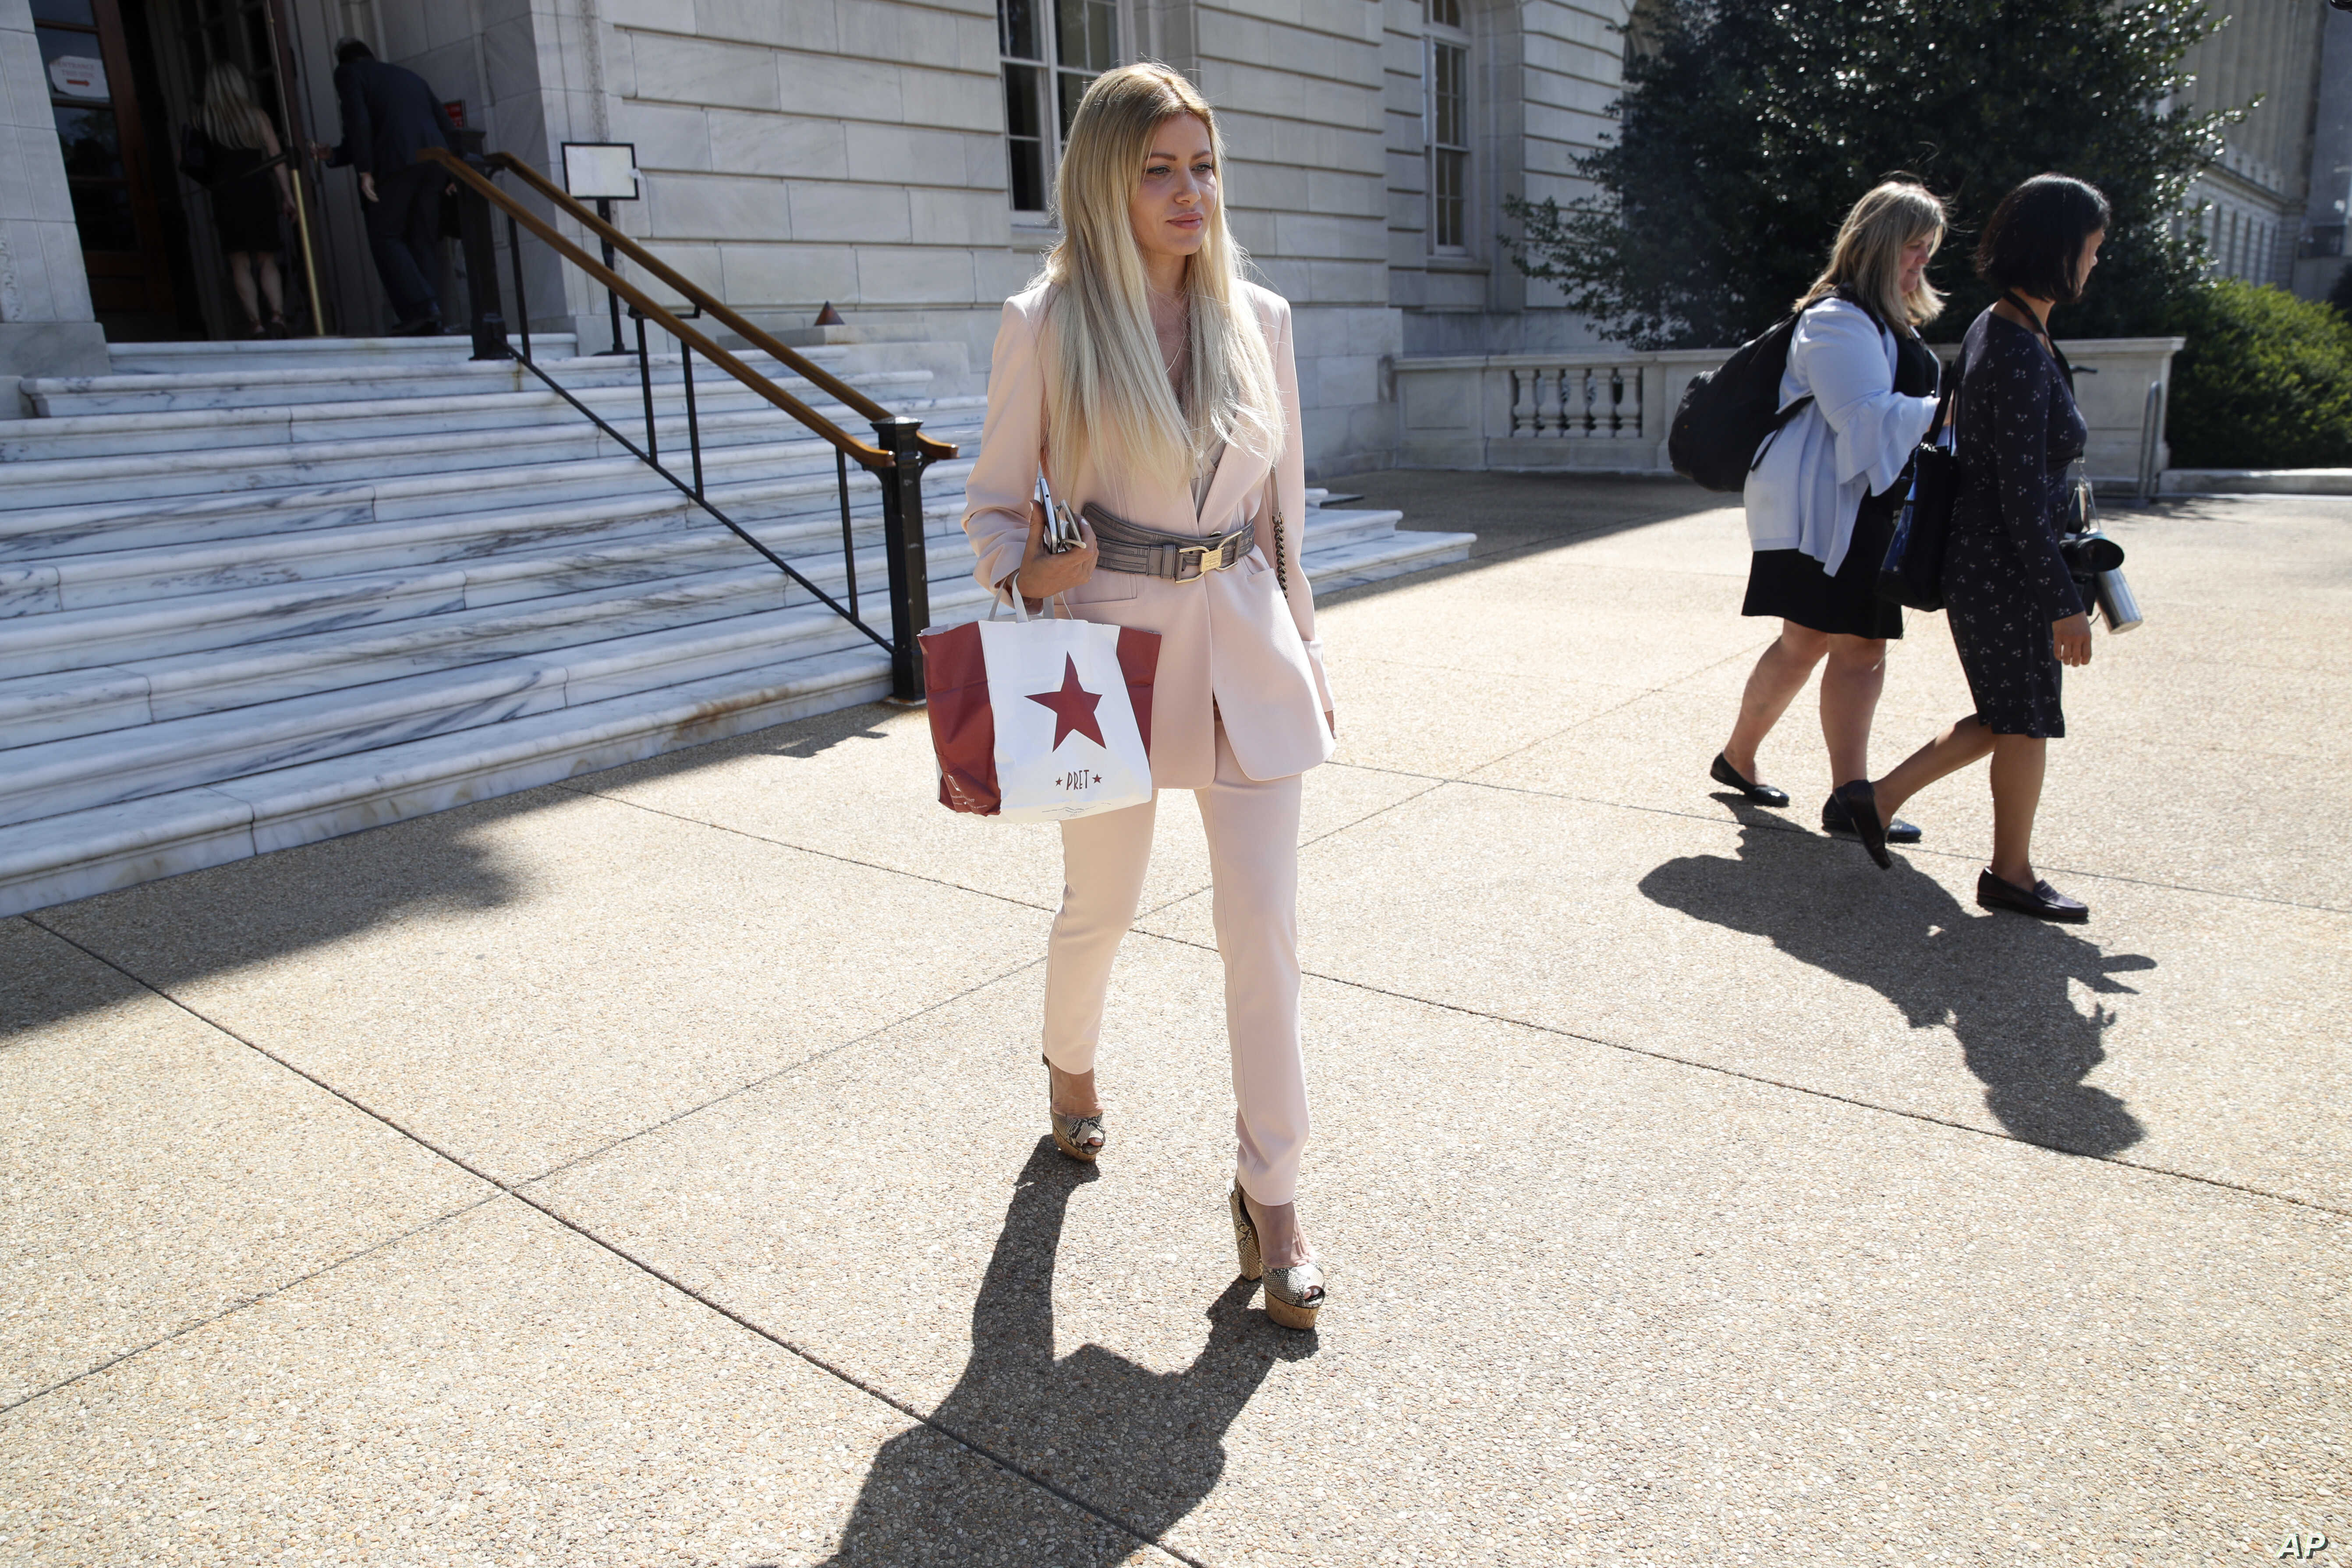 Simona Mangiante Papadopoulos, wife of former Donald Trump campaign adviser George Papadopoulos, leaves the Cannon House Office Building after attending a closed-door meeting with Democrats on the House intelligence committee, July 18, 2018, on Capit...